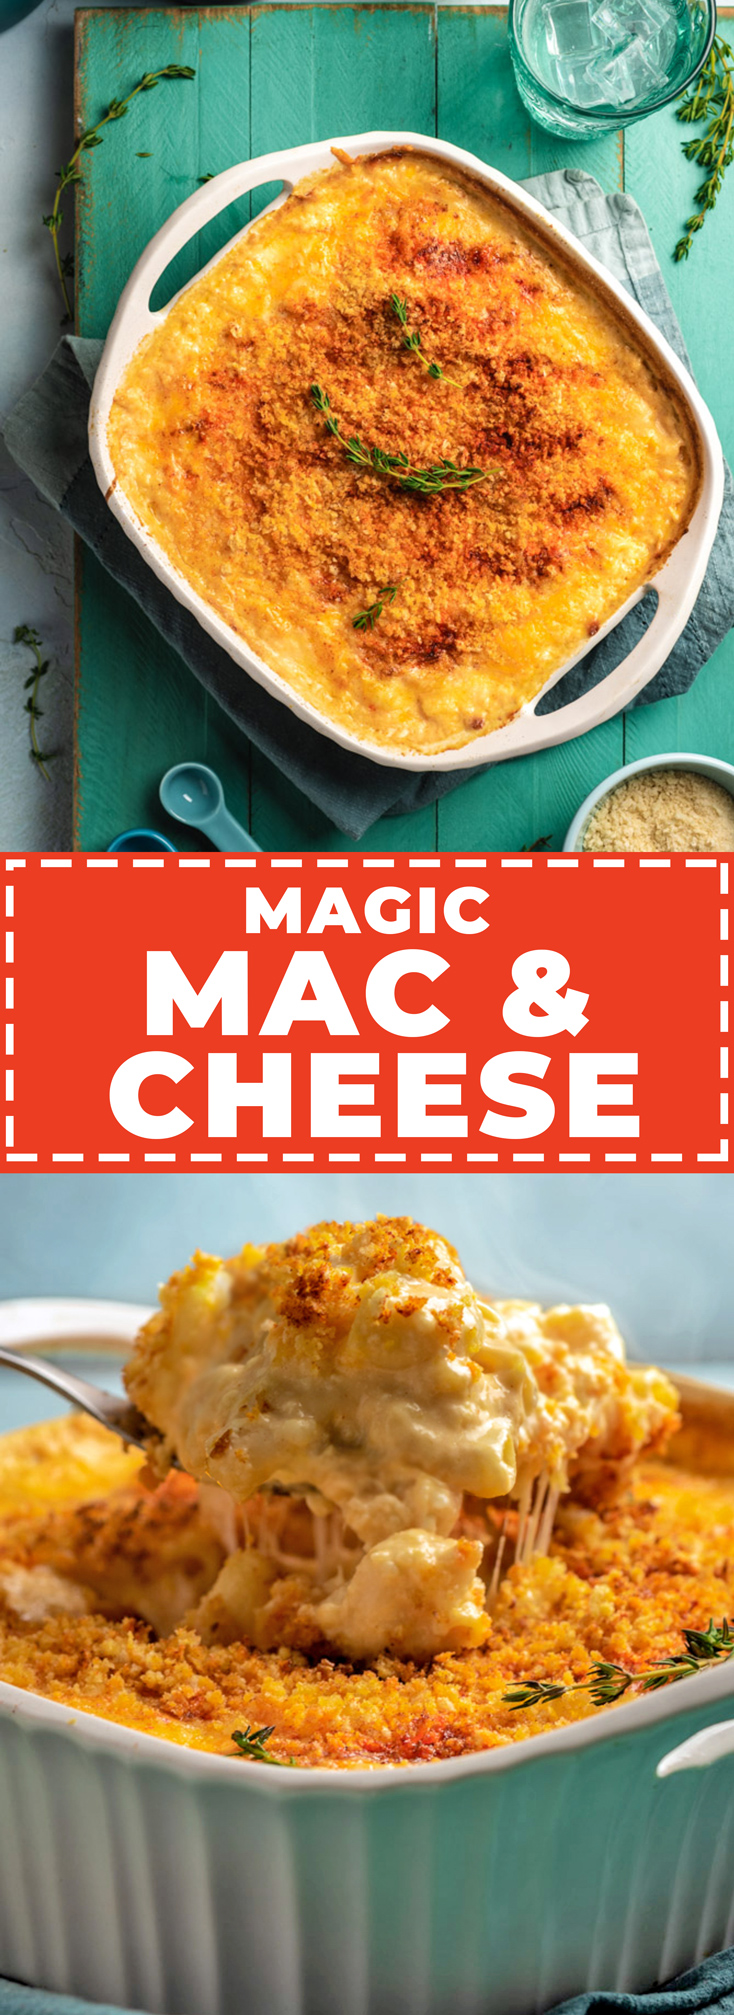 Magic Mac and Cheese is a no-boil, no-roux, and no-nonsense recipe for the richest and most flavorful baked mac of your life. While its flavor is deliciously complex, its foolproof method is (truly) simple to cook and customize. | hostthetoast.com